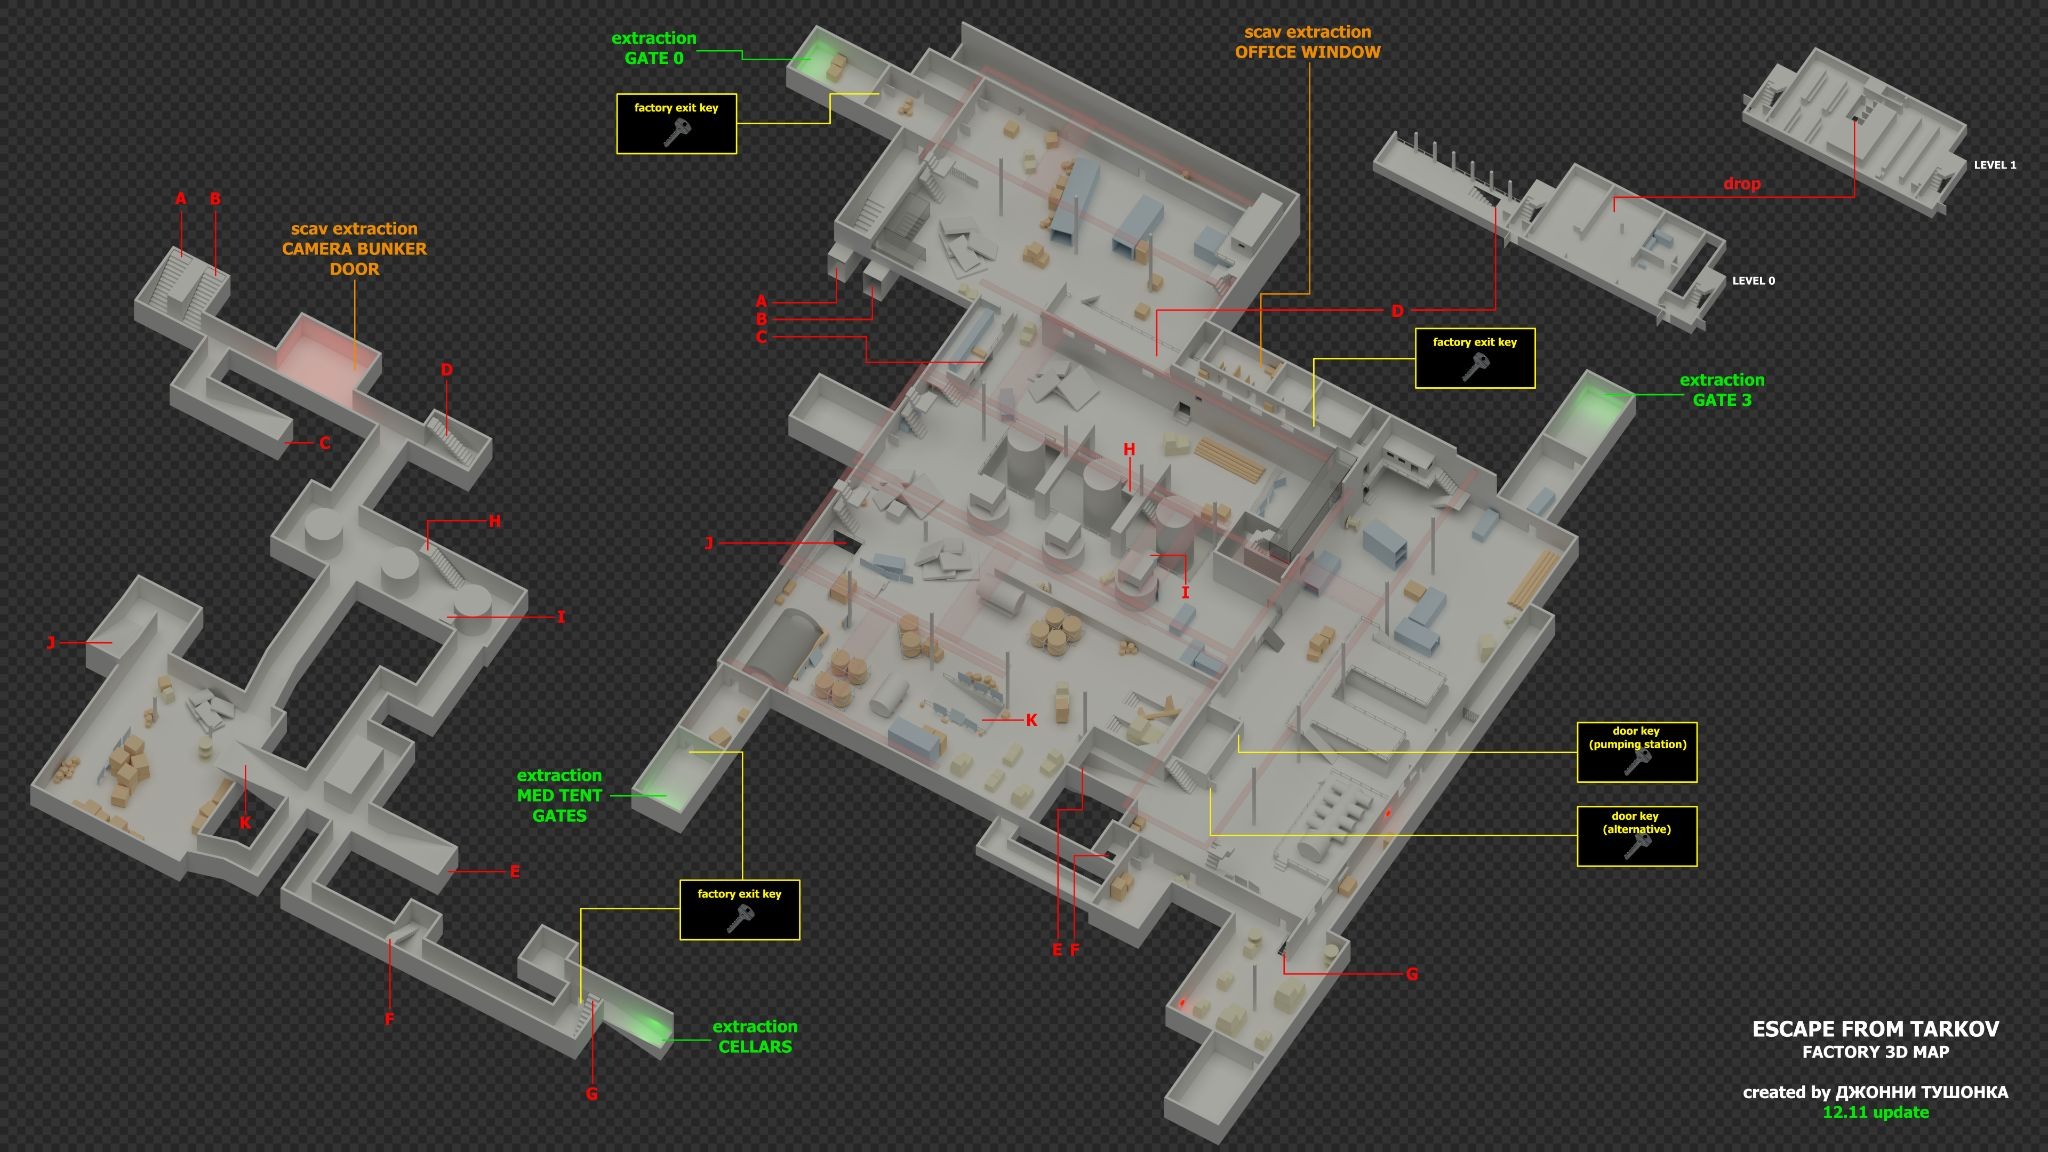 Factory 3D map with tunnels and catwalks 7680x4320 - 12.11 update.jpg